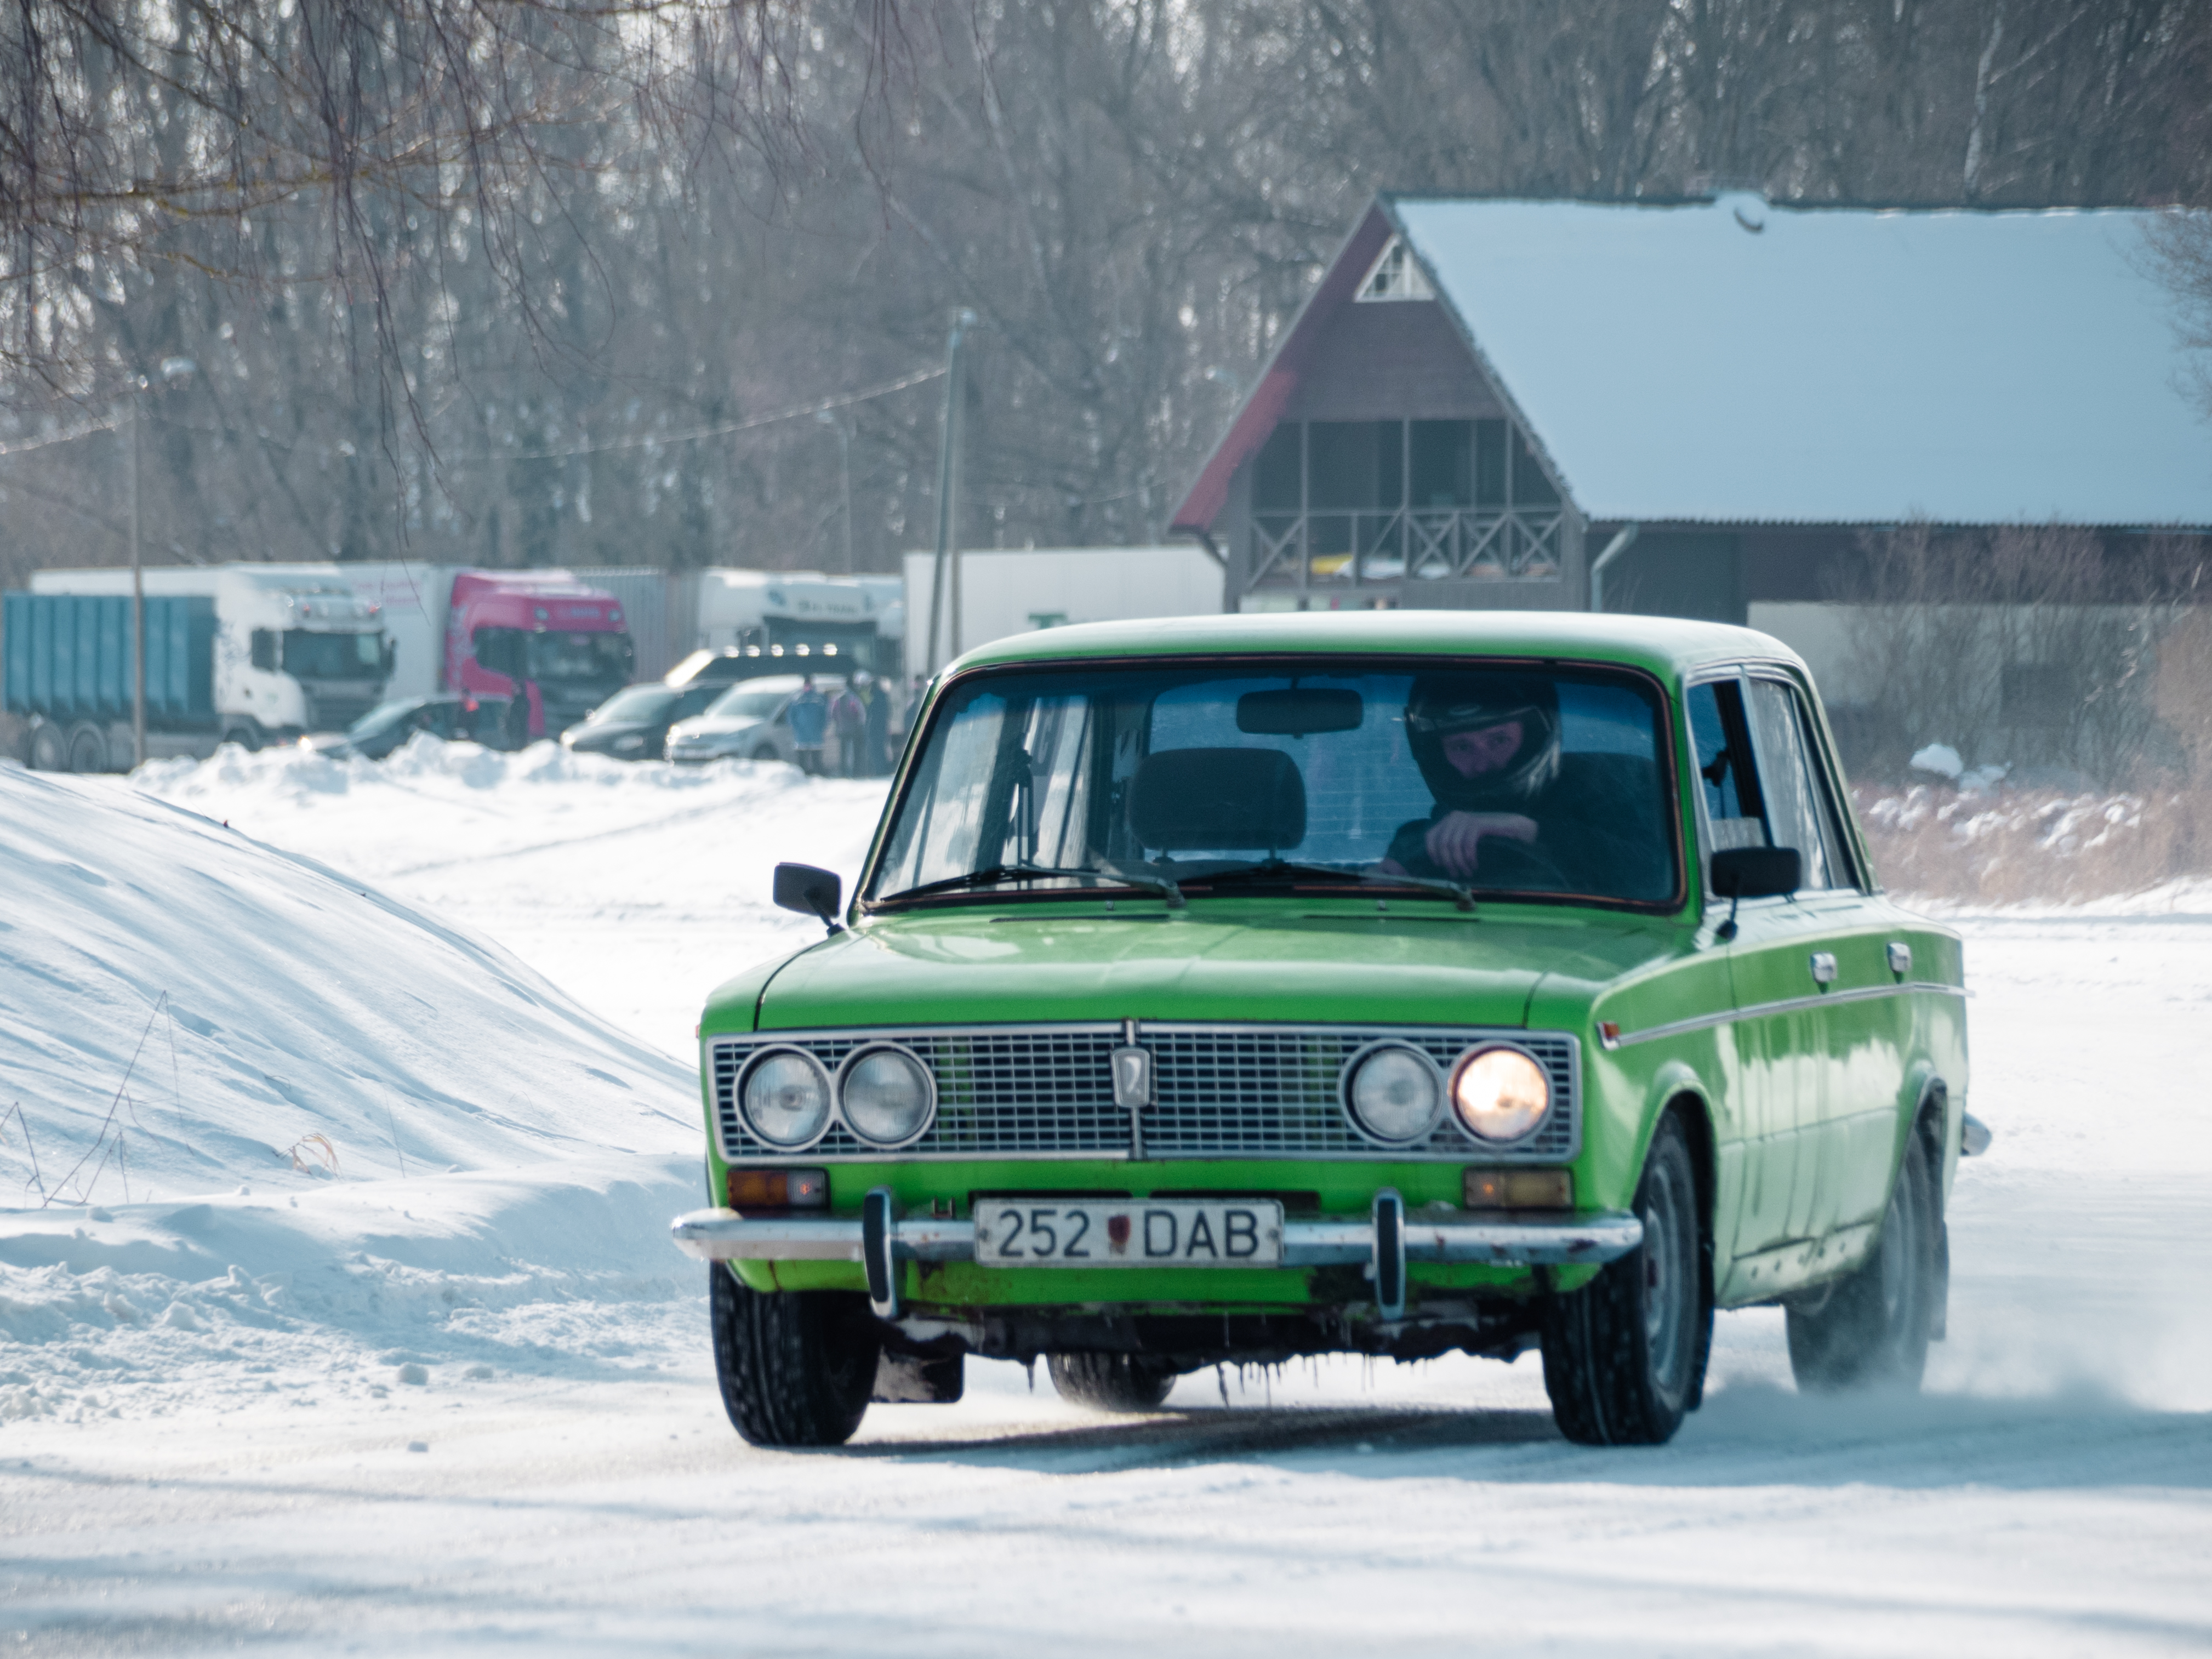 Like most old-timers, this Lada, too, has rear-wheel drive.